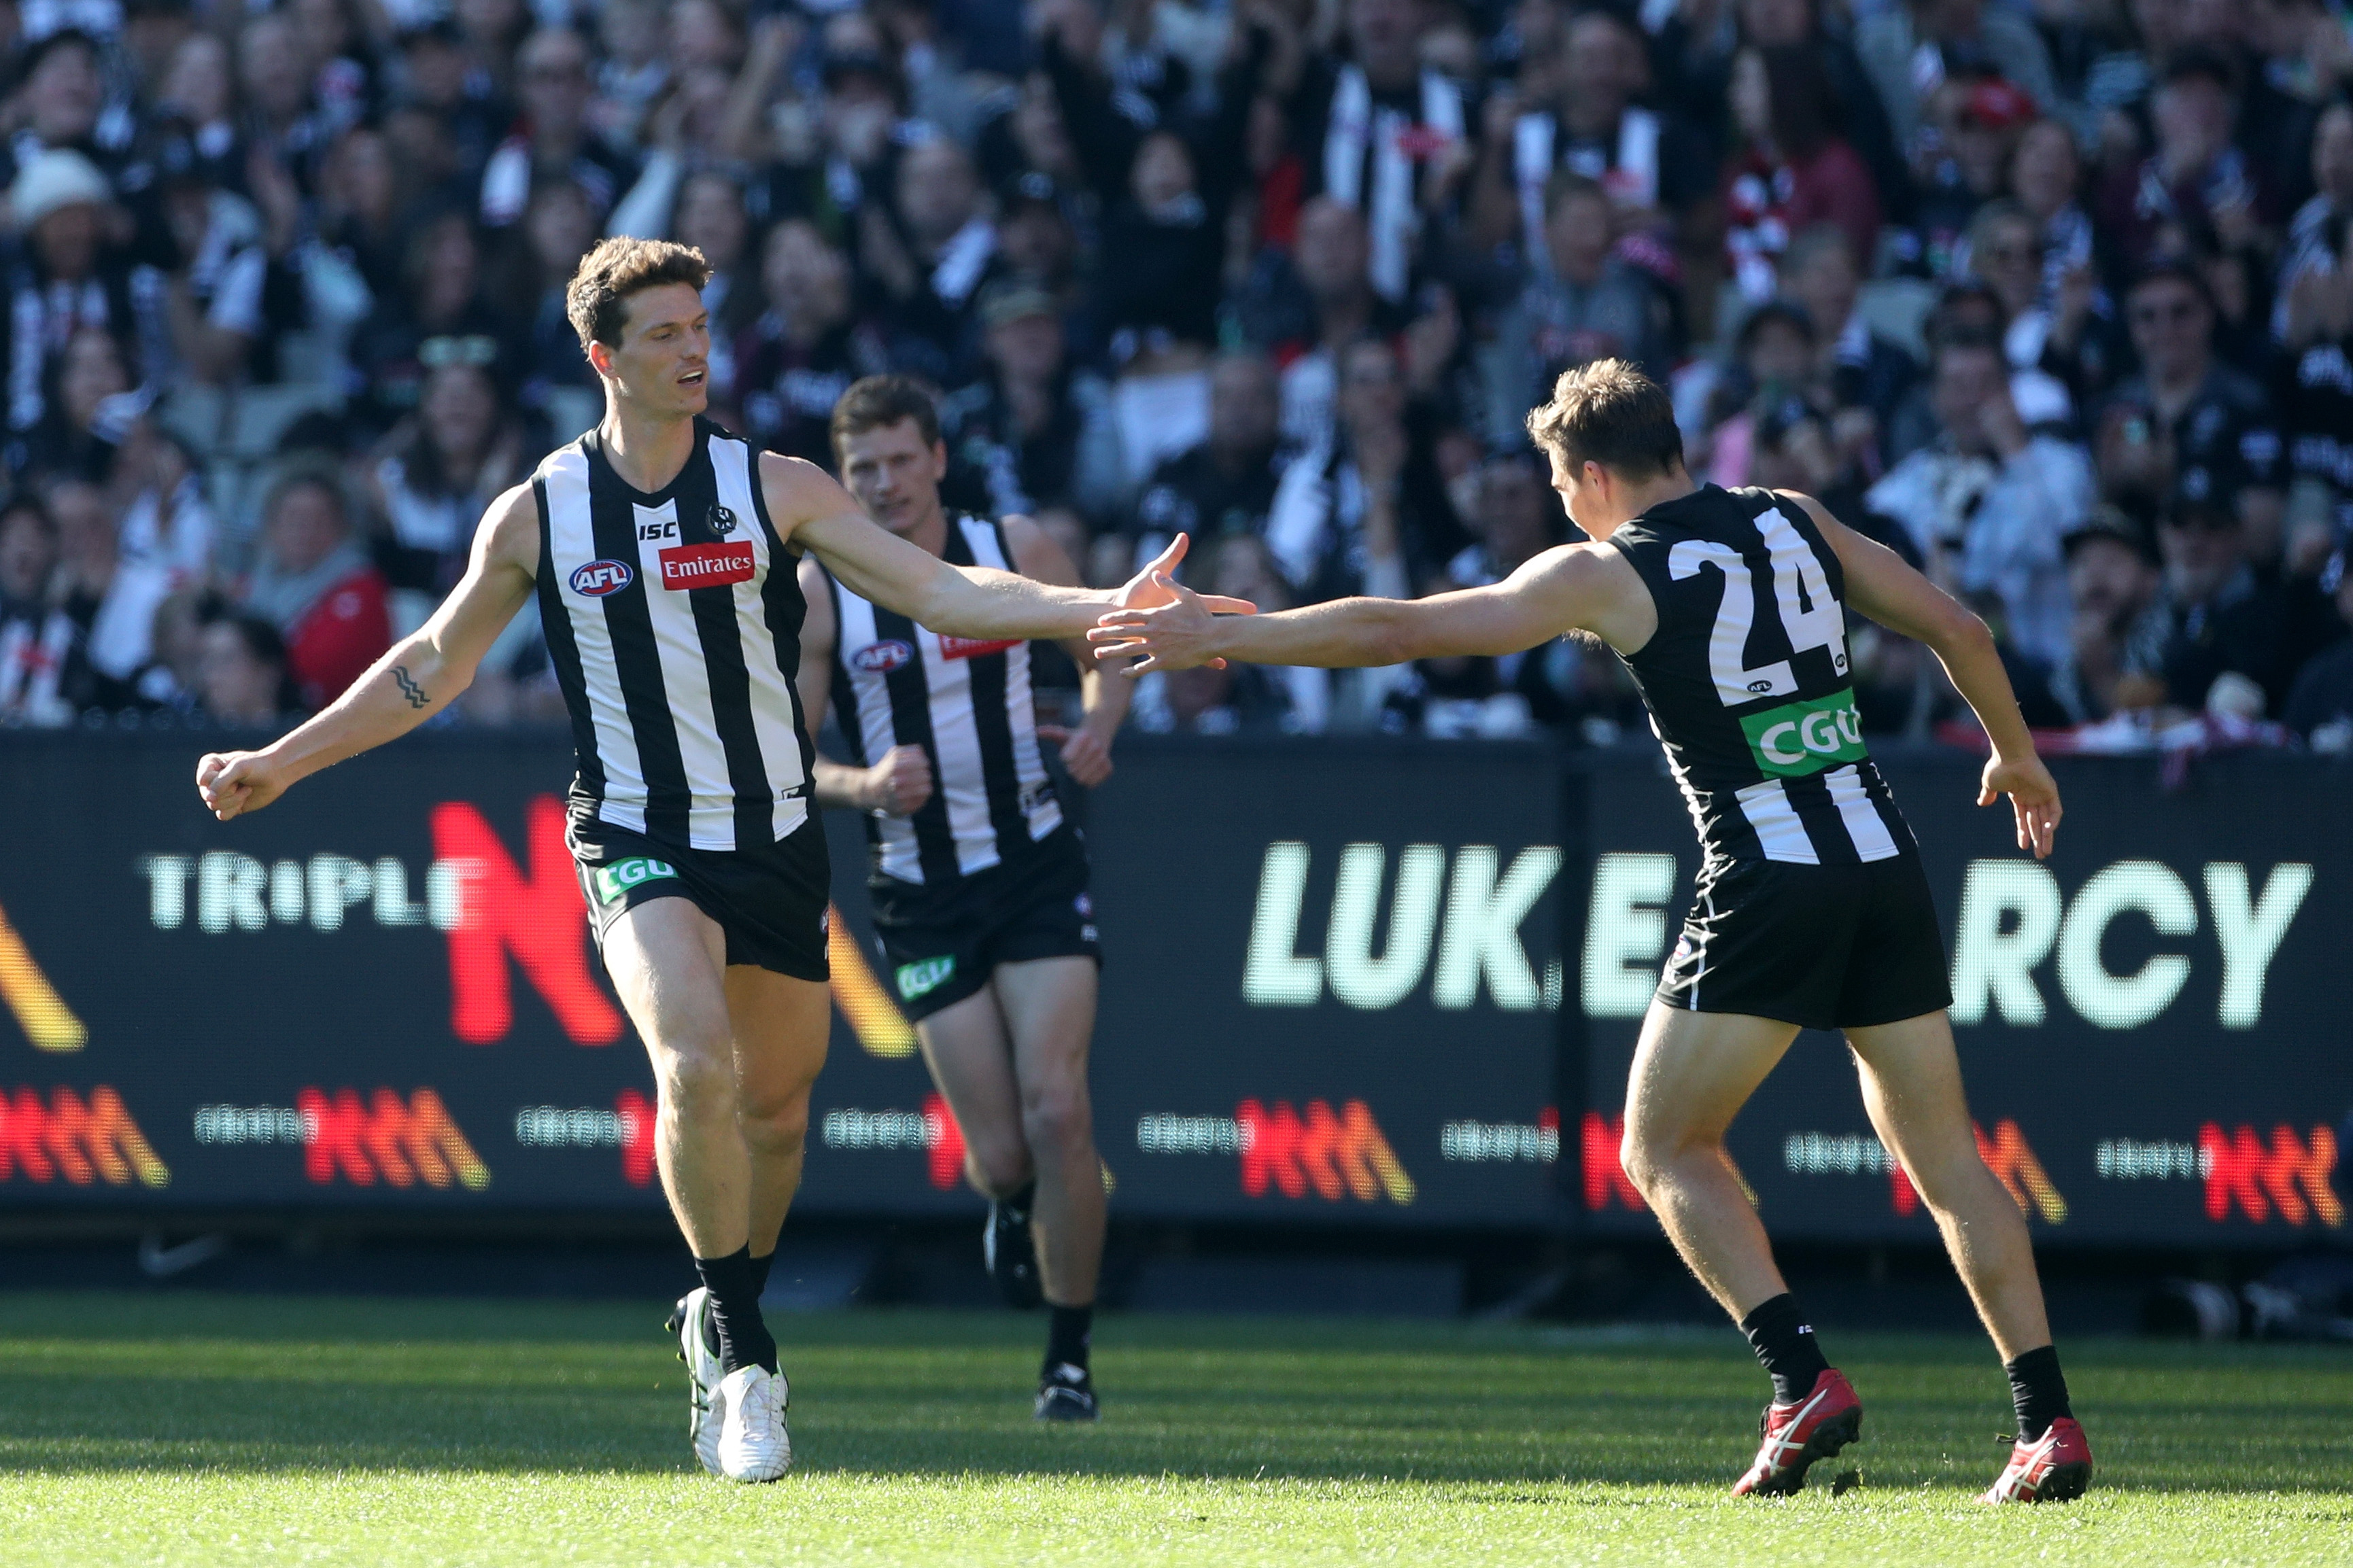 The Pies blow away the Saints by 41 points